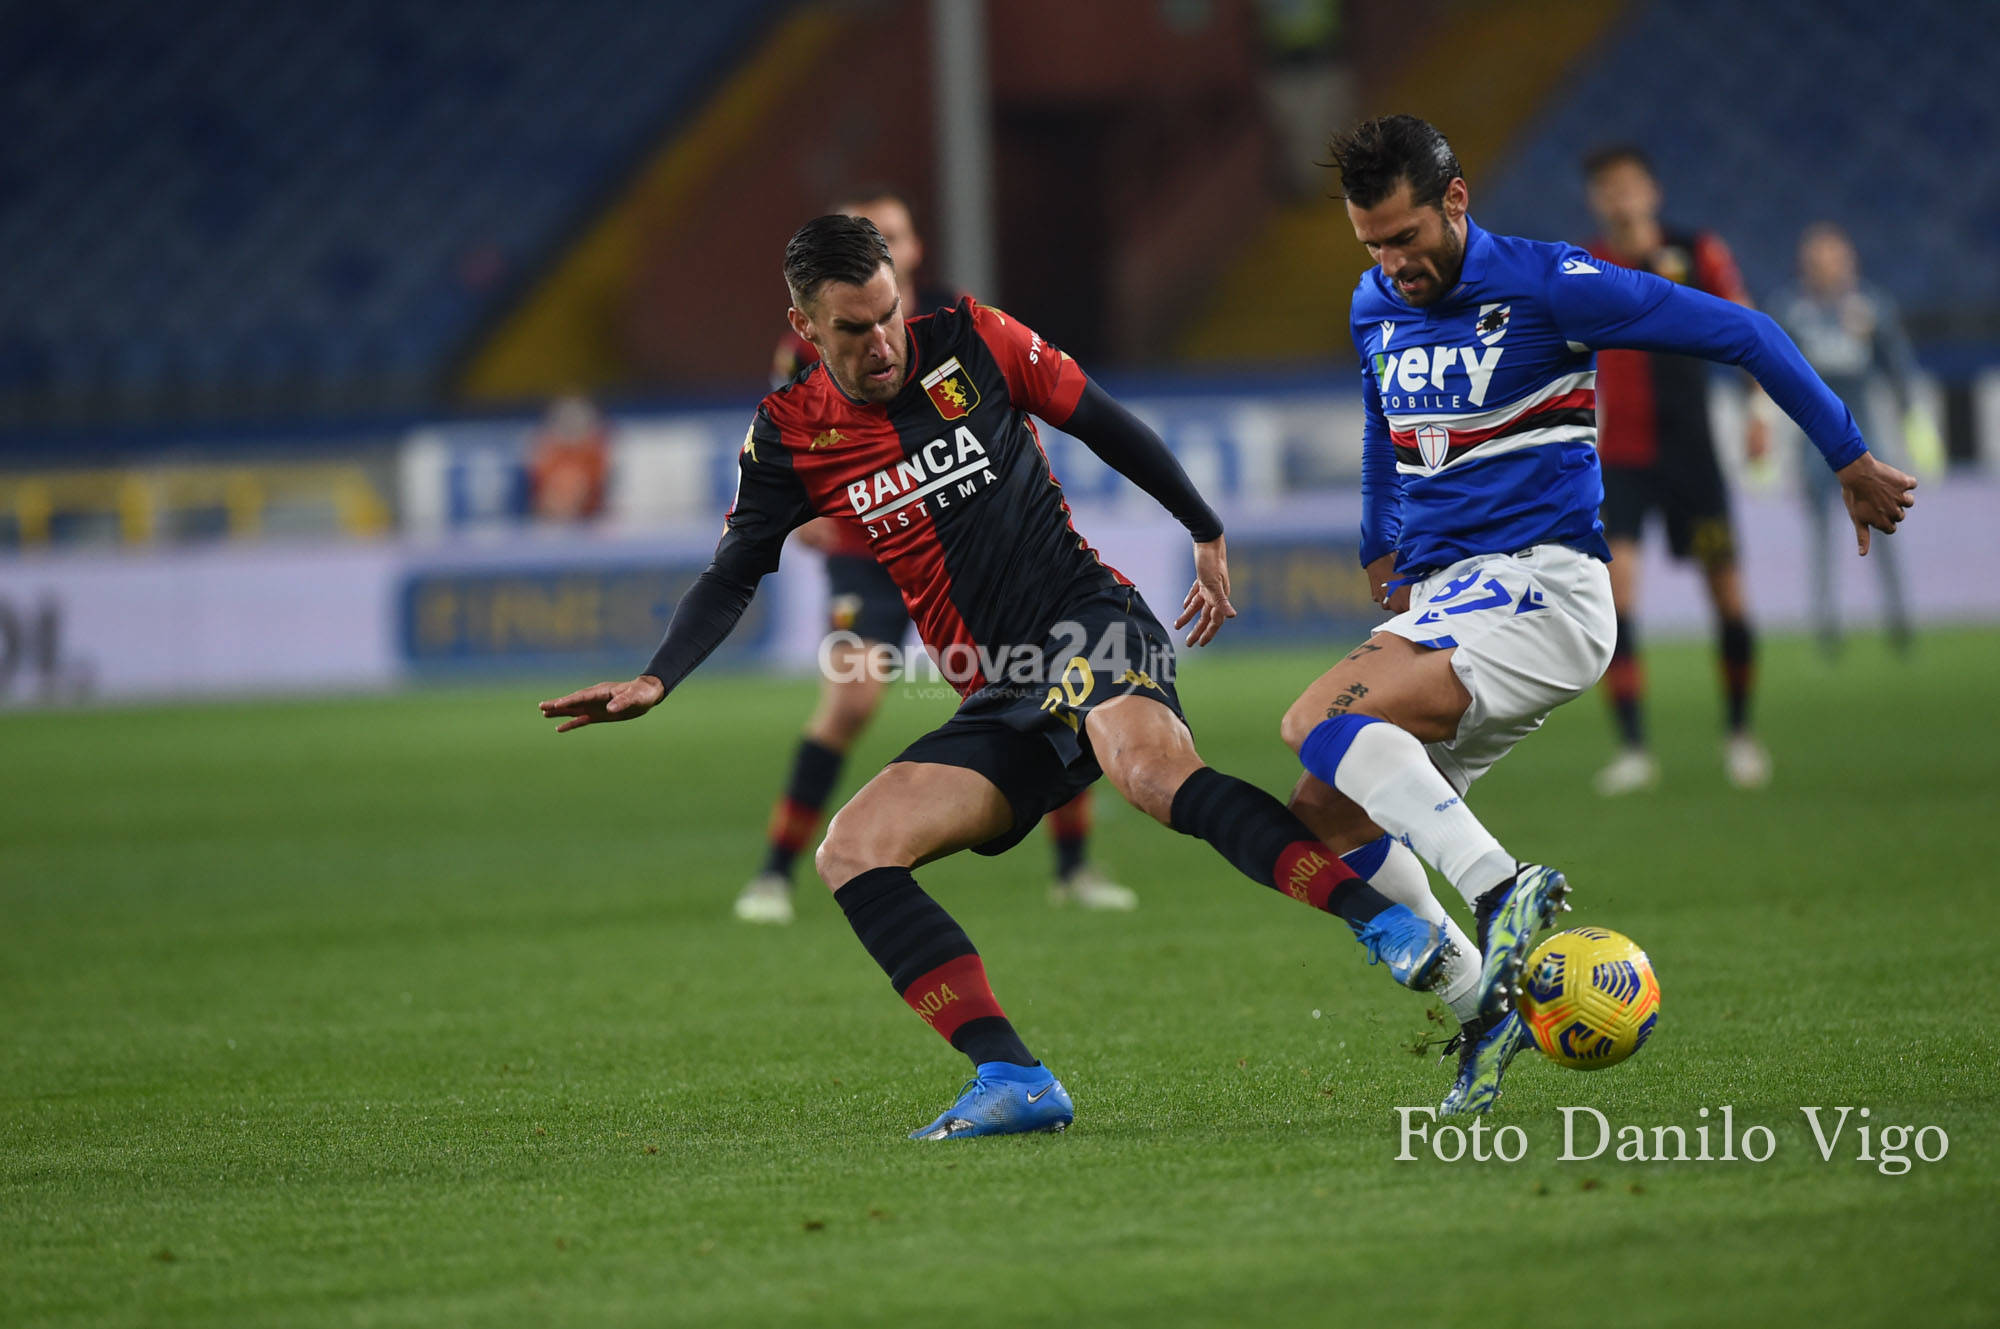 Genoa Vs Sampdoria